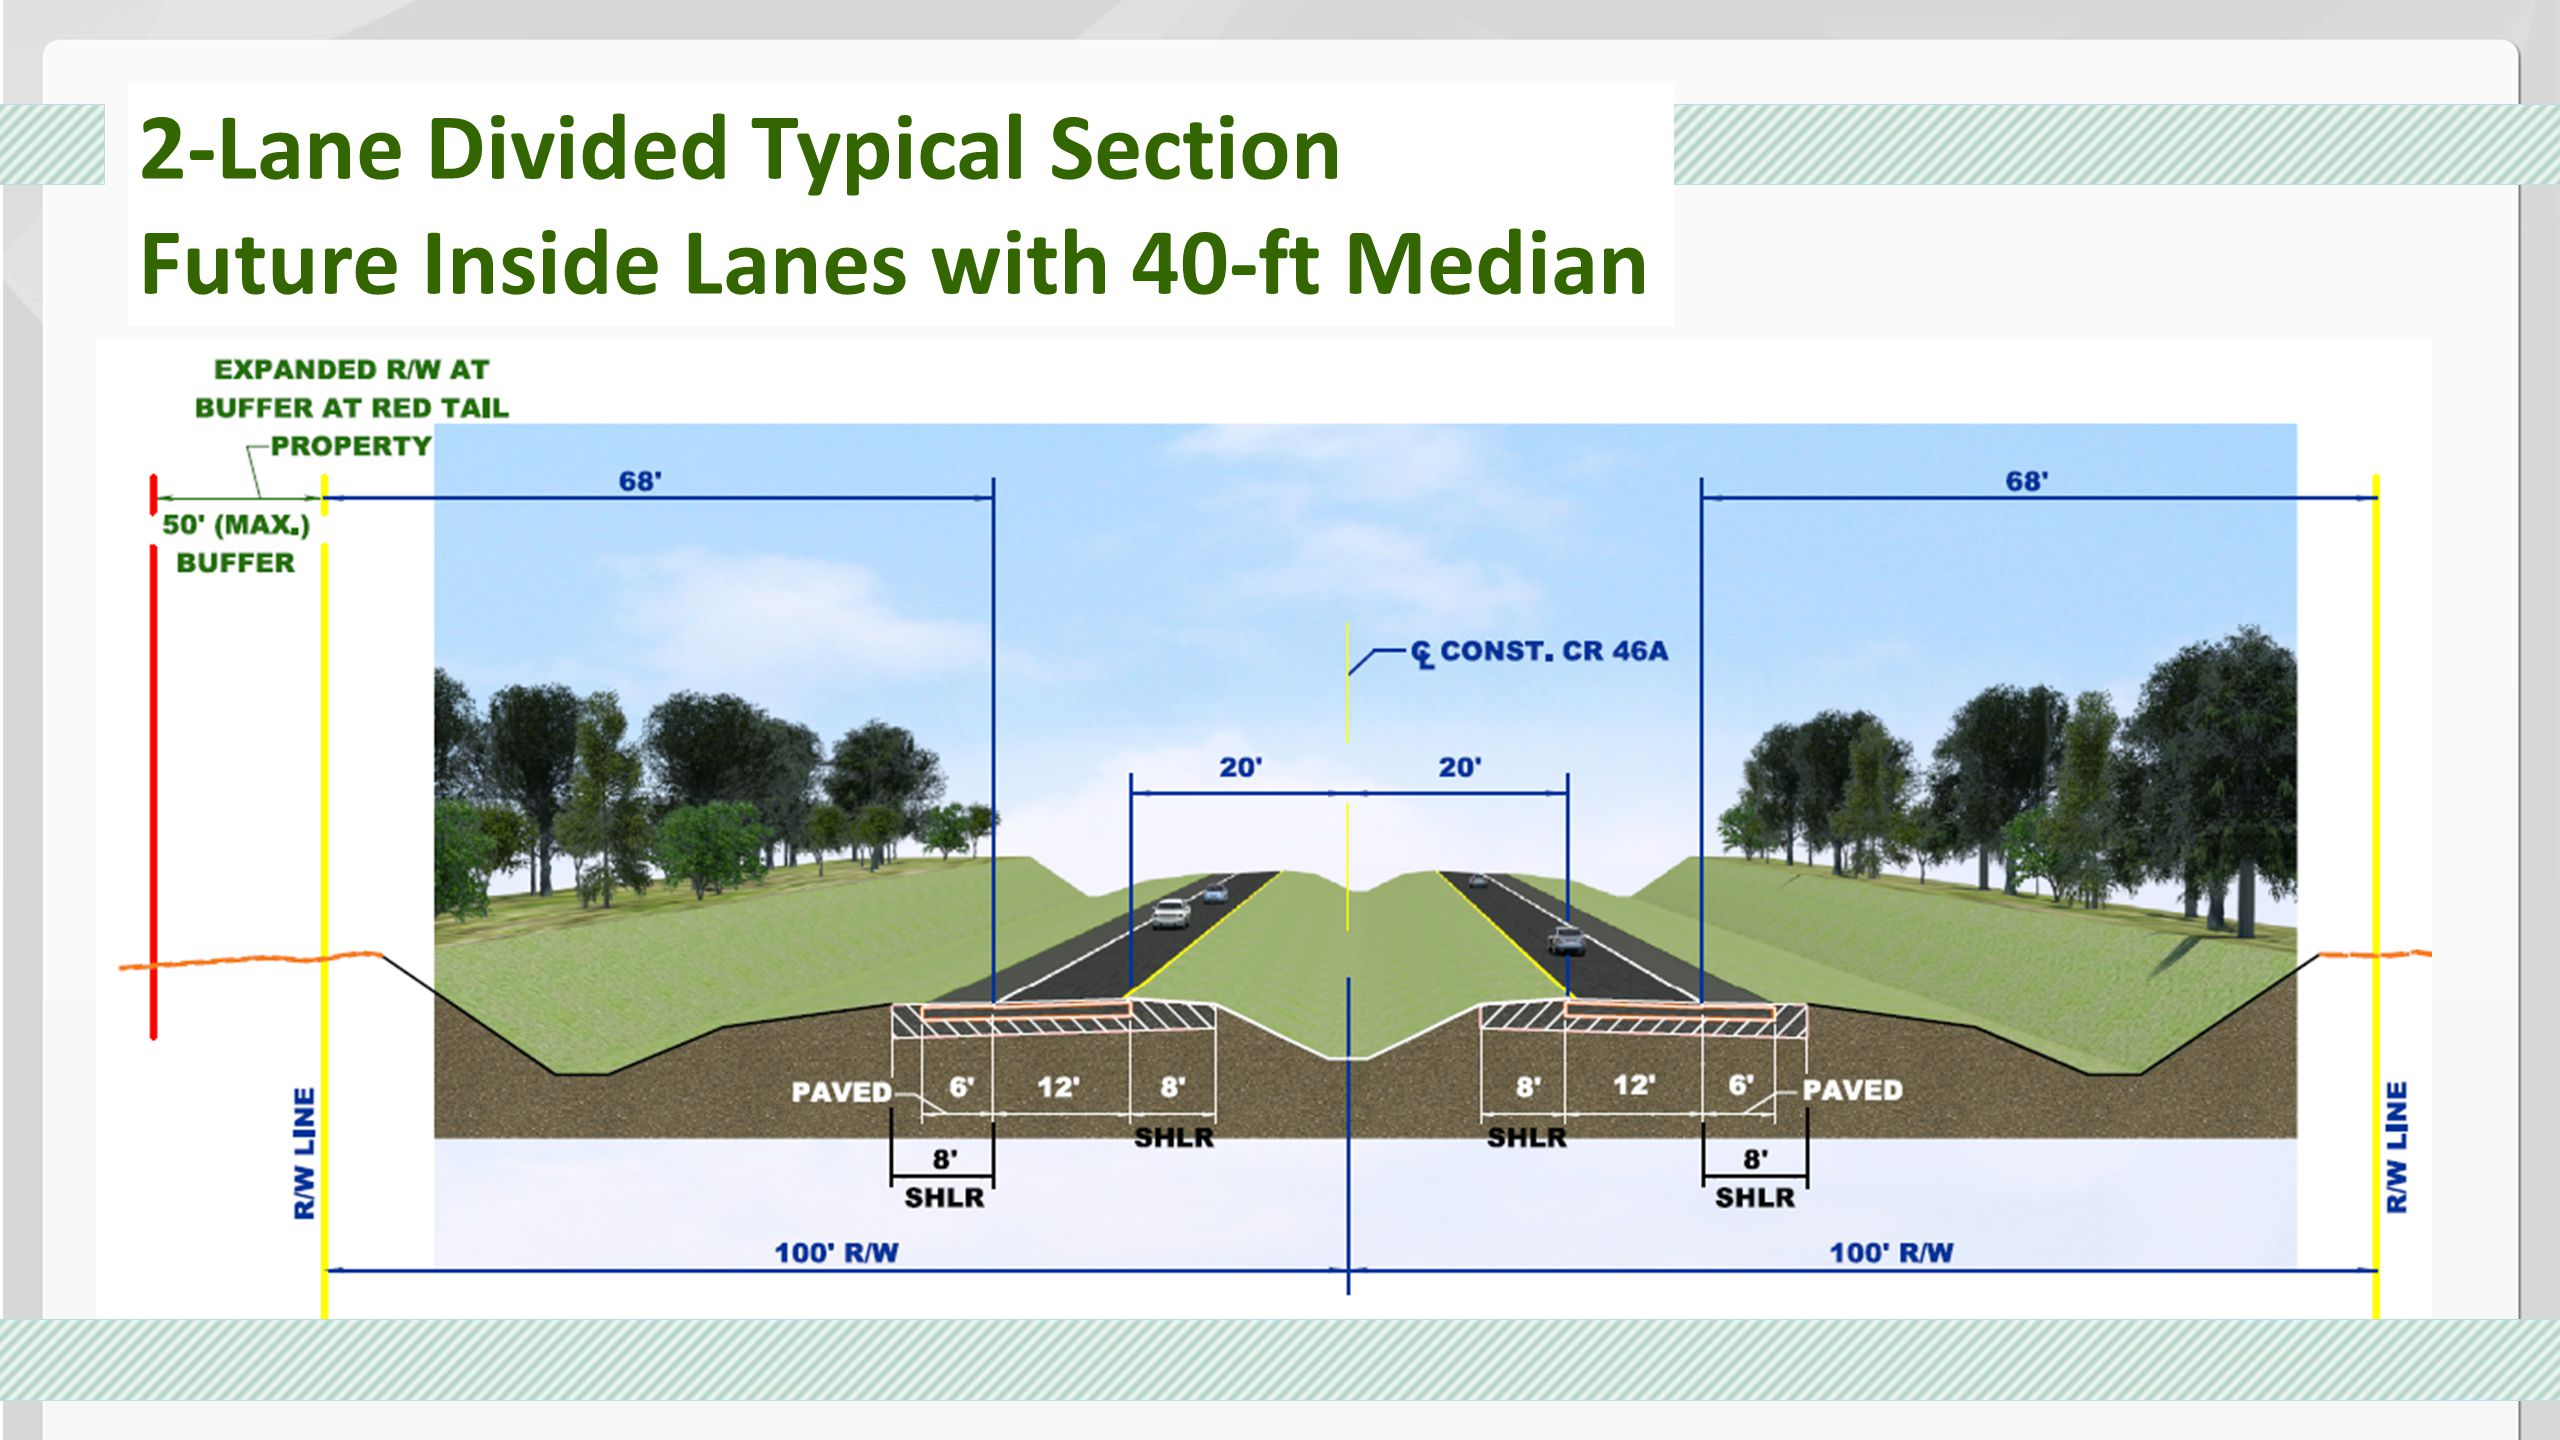 2-Lane Divided Typical Section